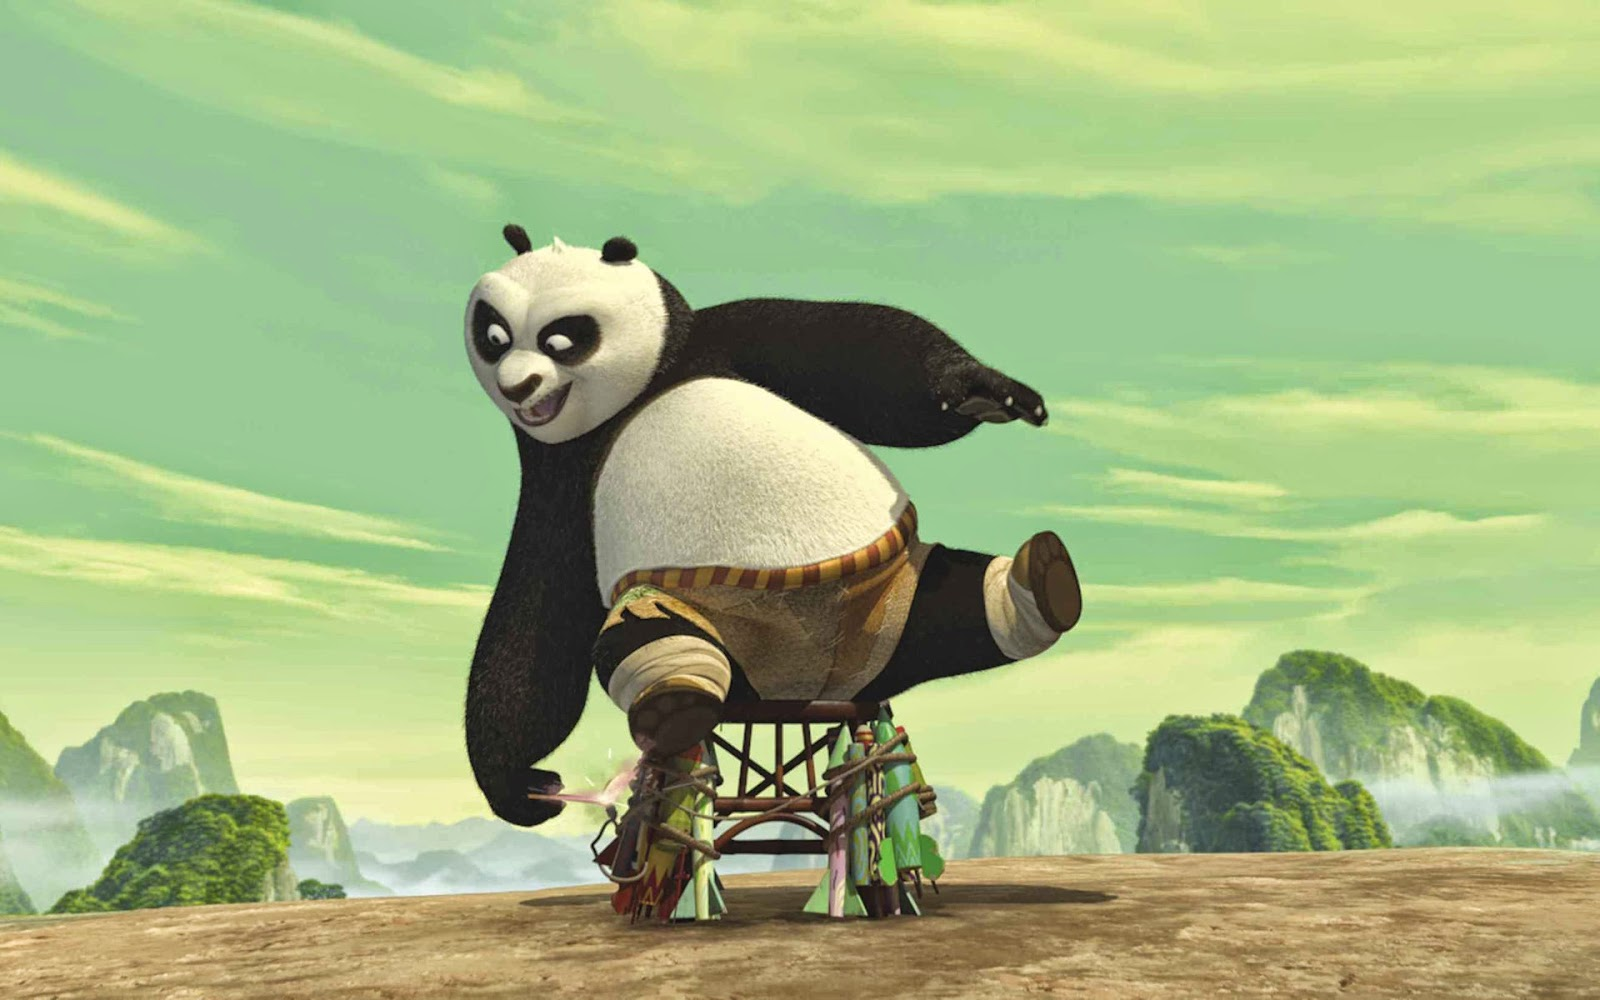 Wallpaper Kungfu Panda 2 HD Deloiz Wallpaper